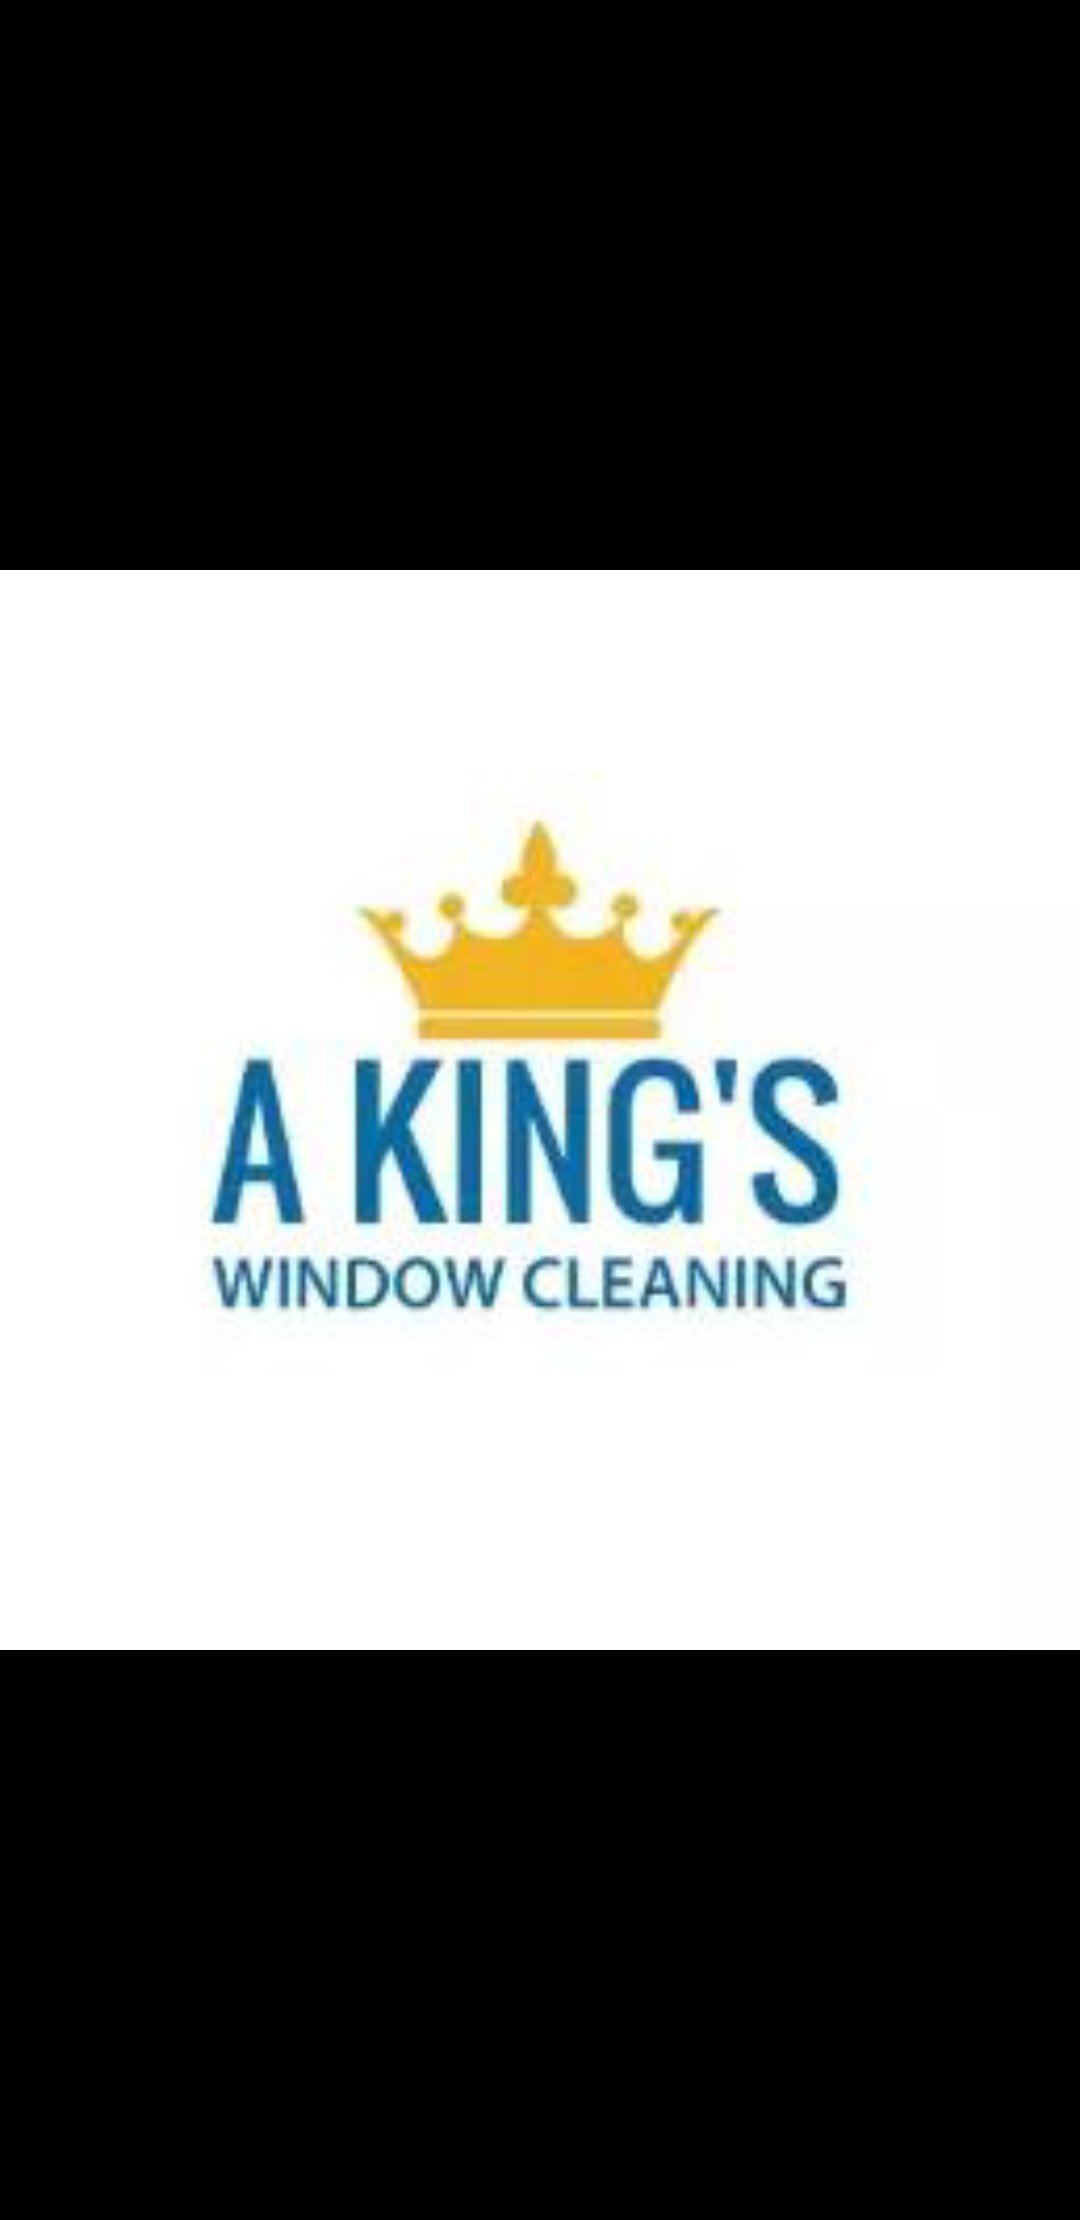 A Kings Window Cleaning